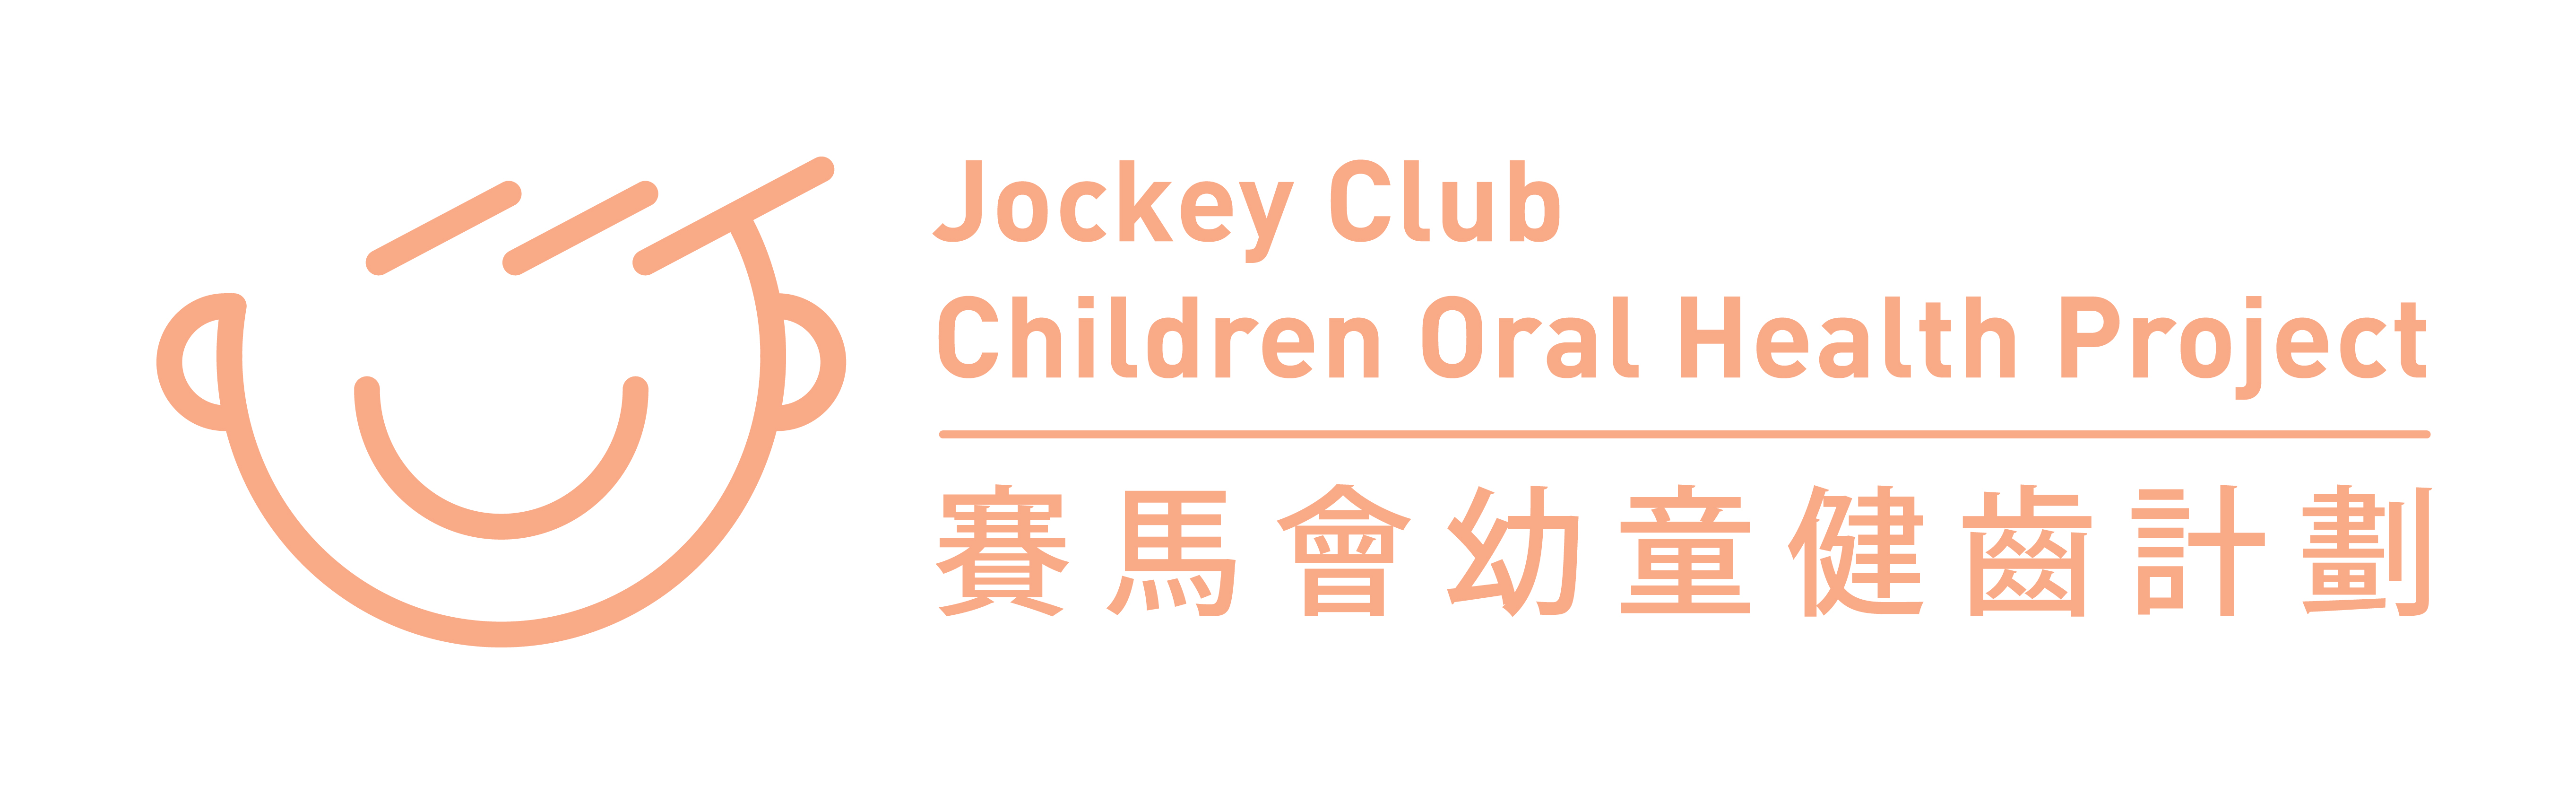 Jockey Club Children Oral Health Project Press Conference Banner